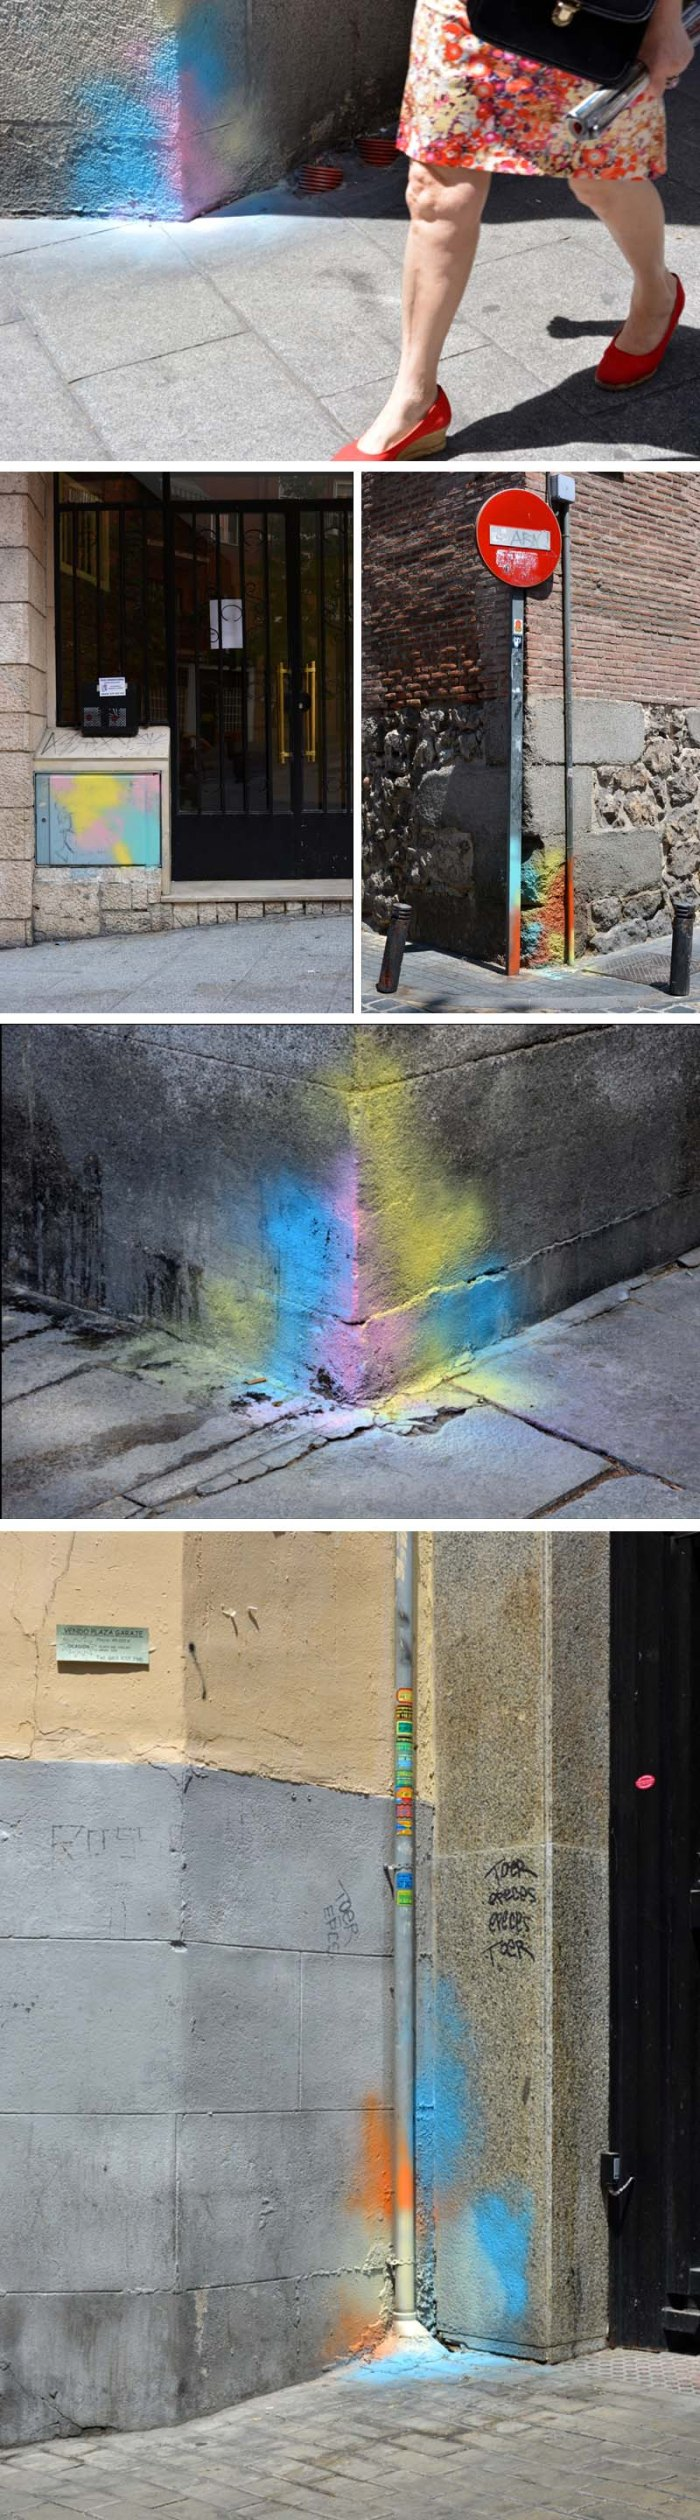 Rosh, Spanish Street Art, Street art in Madrid, Escrito en la Pared, color splashes